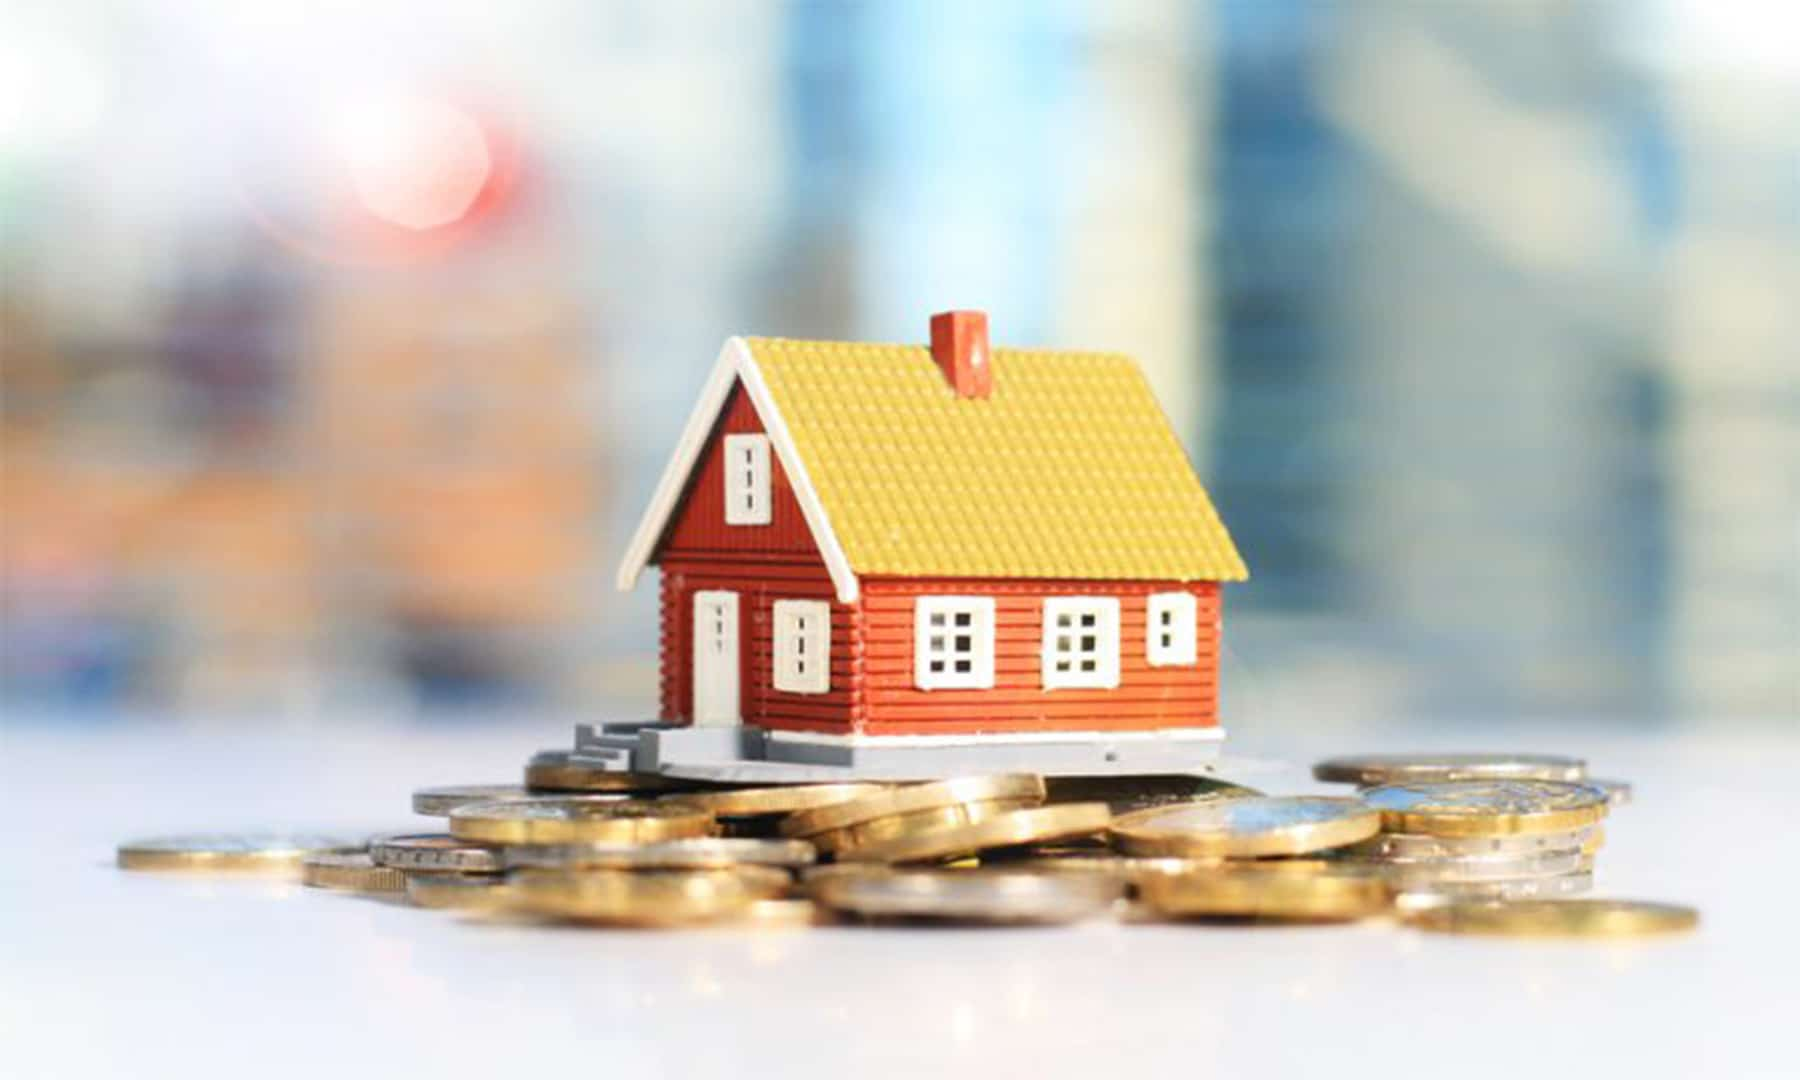 https://www.hartpartners.com.au/wp-content/uploads/2018/06/HartPartners-What-The-Super-Housing-Measures-Mean-for-SMSFs-768x461.jpg